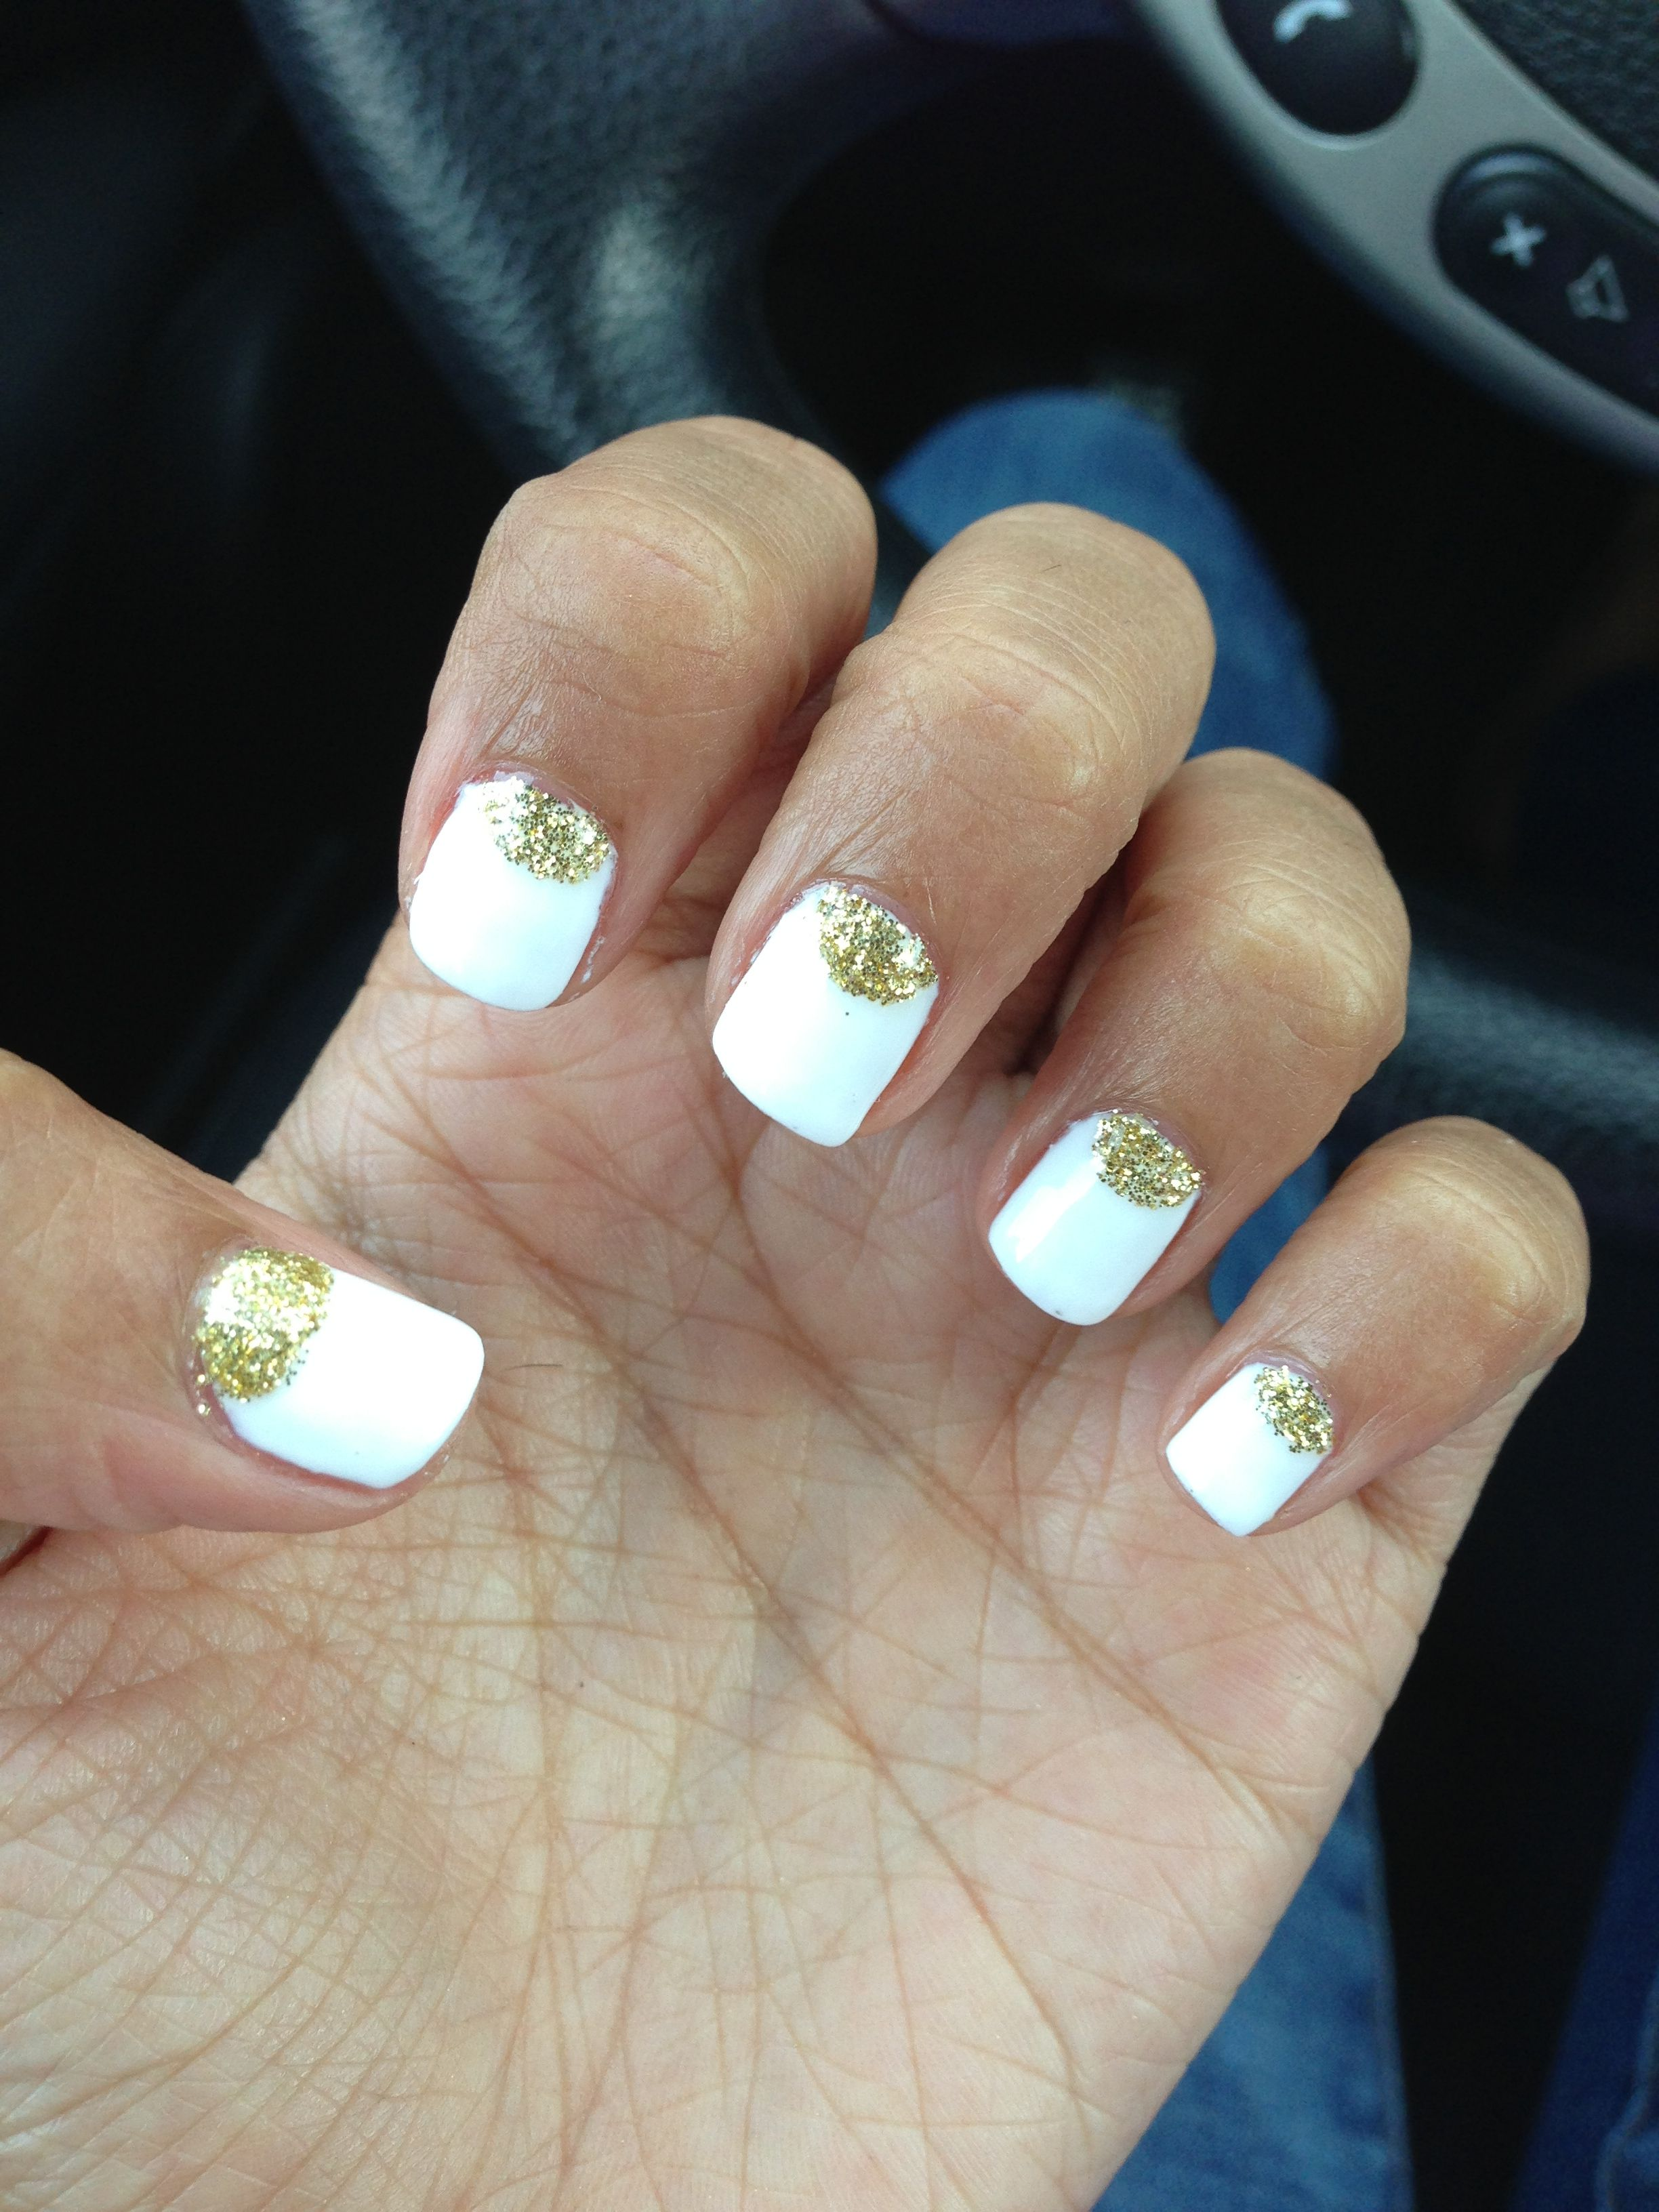 Pin By Chandni Desai On Hair Nails And Makeup Shellac Nail Designs Shellac Designs Hair And Nails